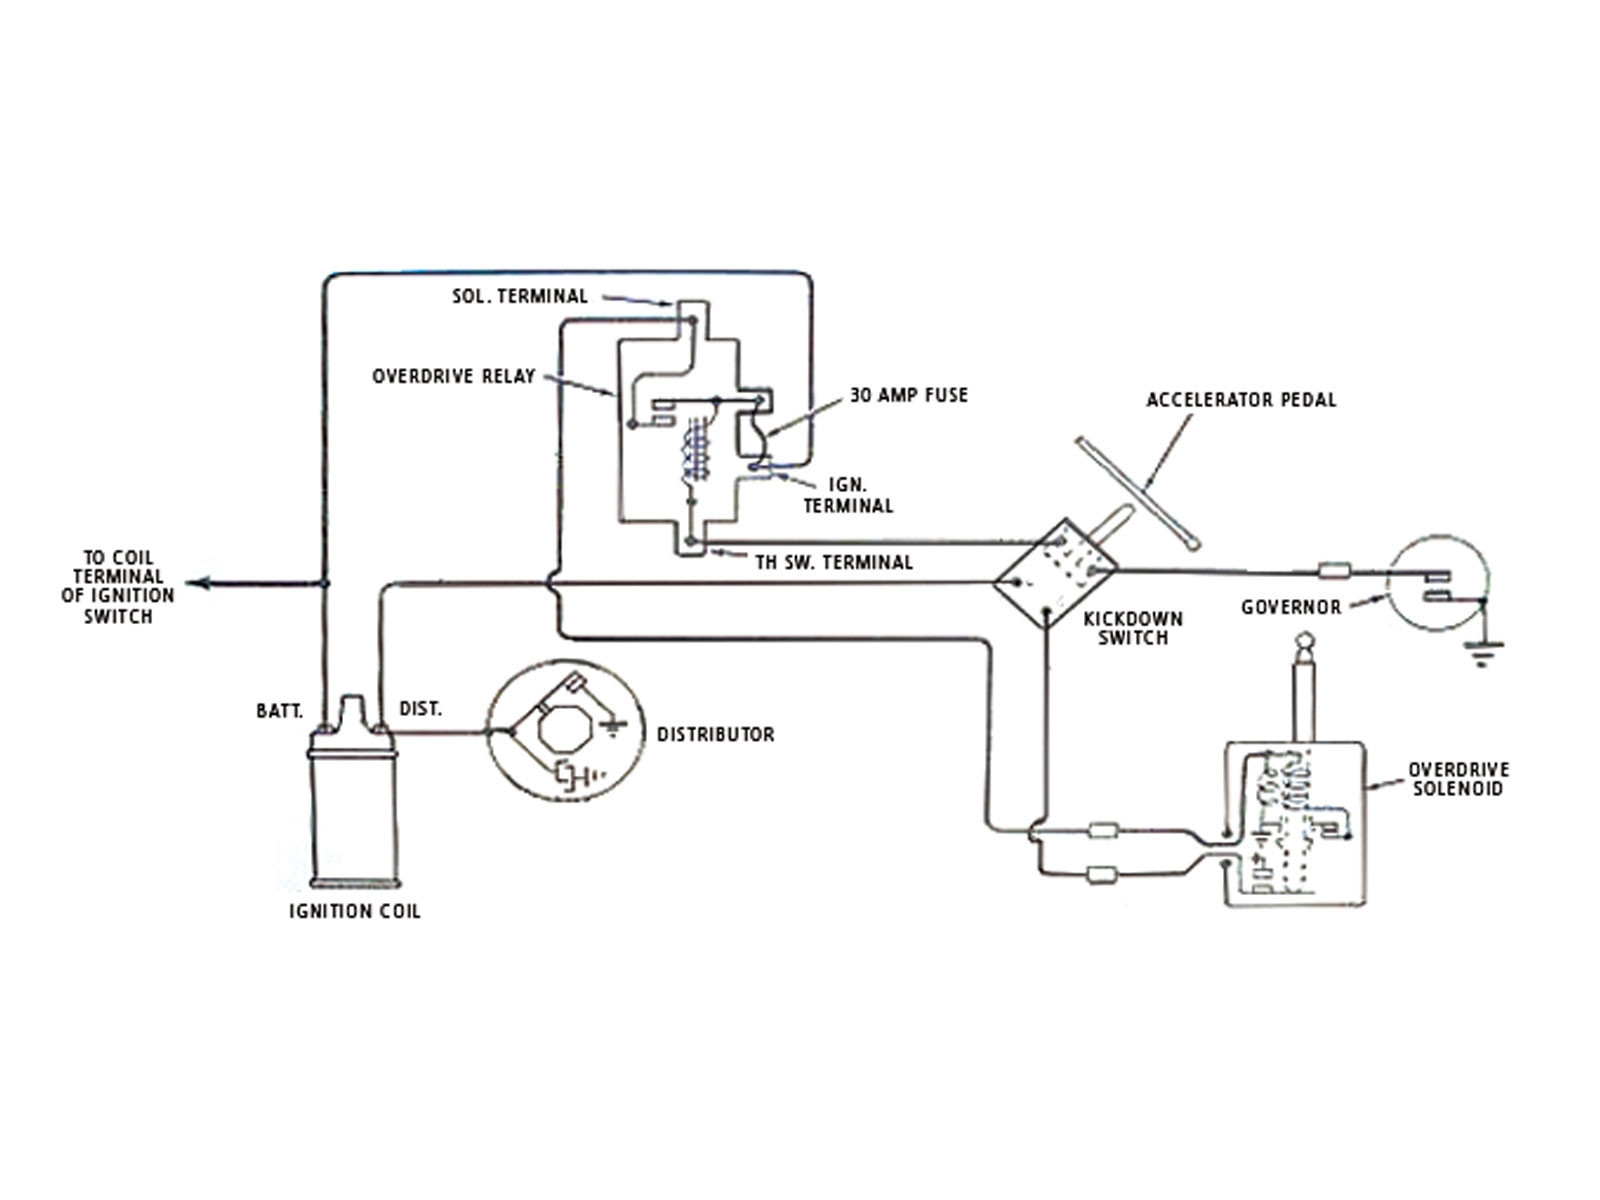 safety circuit wiring diagram Download-Wiring Diagram Relay Circuit Refrence Automotive Switch Wiring Diagram New Wiring Diagram Safety Relay 12-c